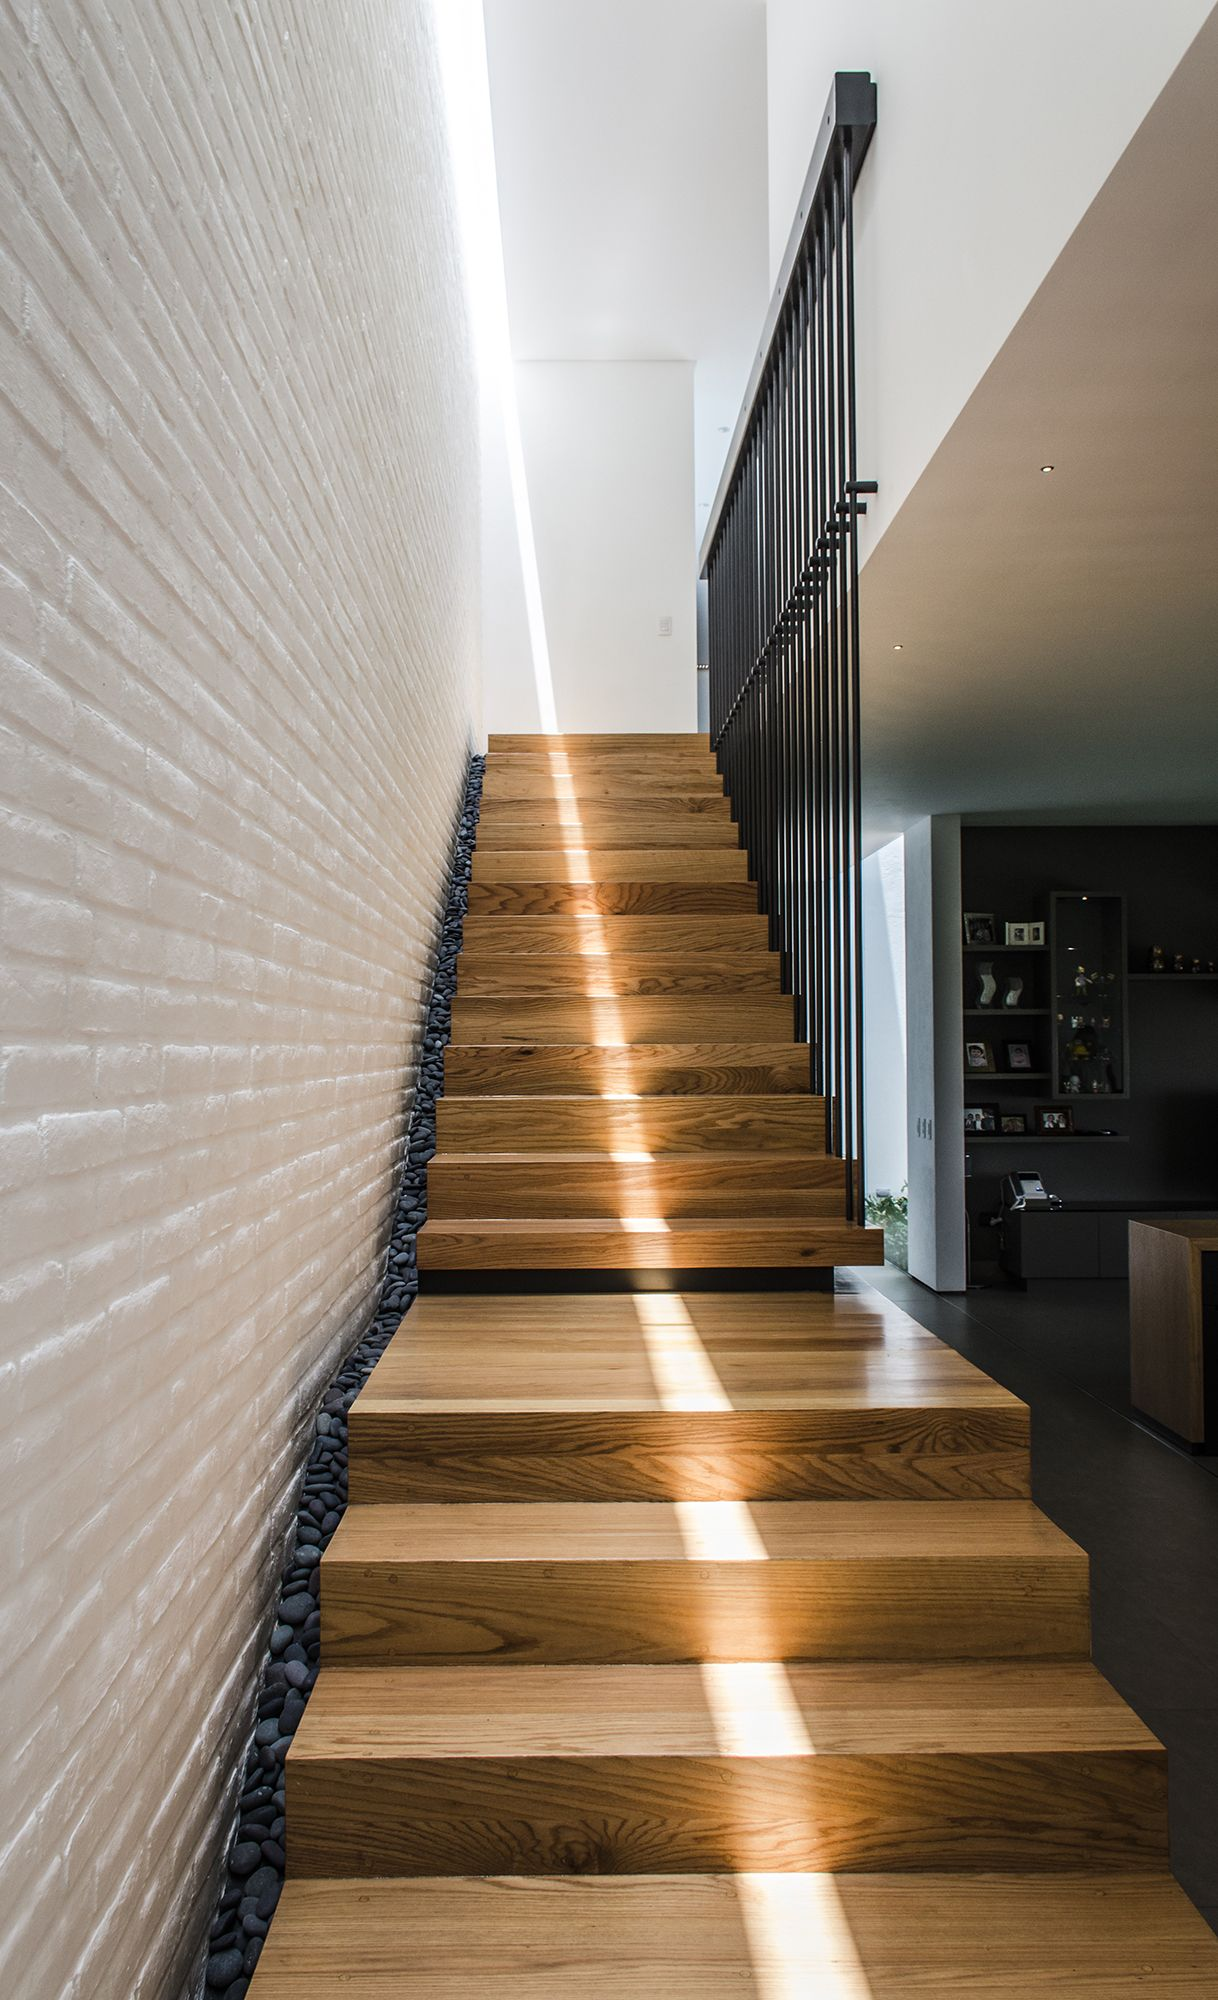 Image Result For Self Supportive Floating L Stair With Landing